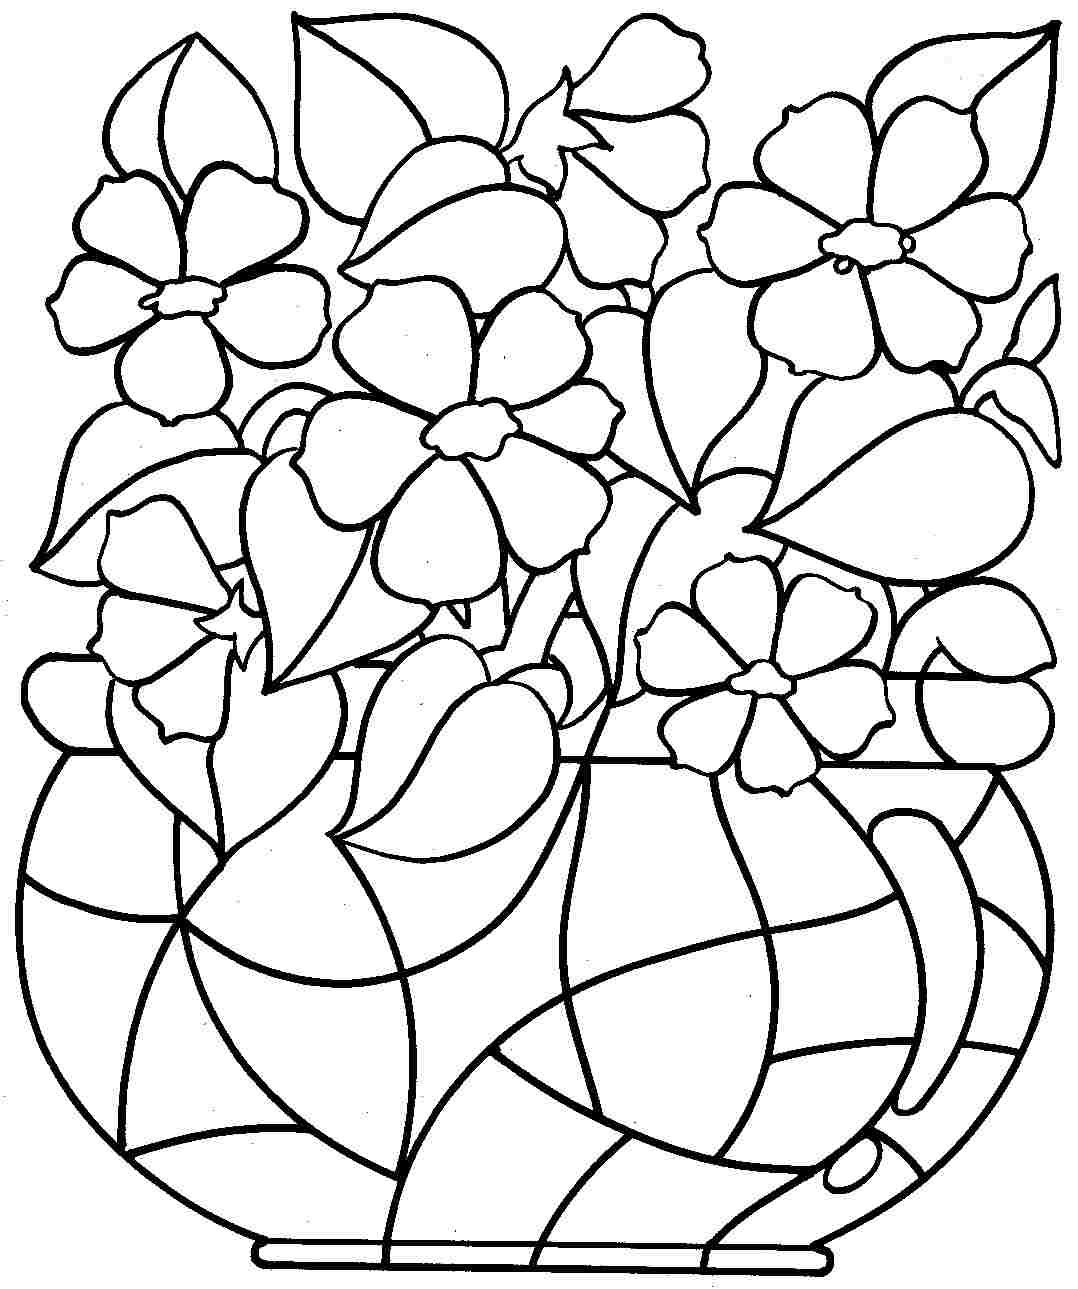 Free Downloadable Coloring Pages - Free Printable Coloring Pages Flowers for Kids